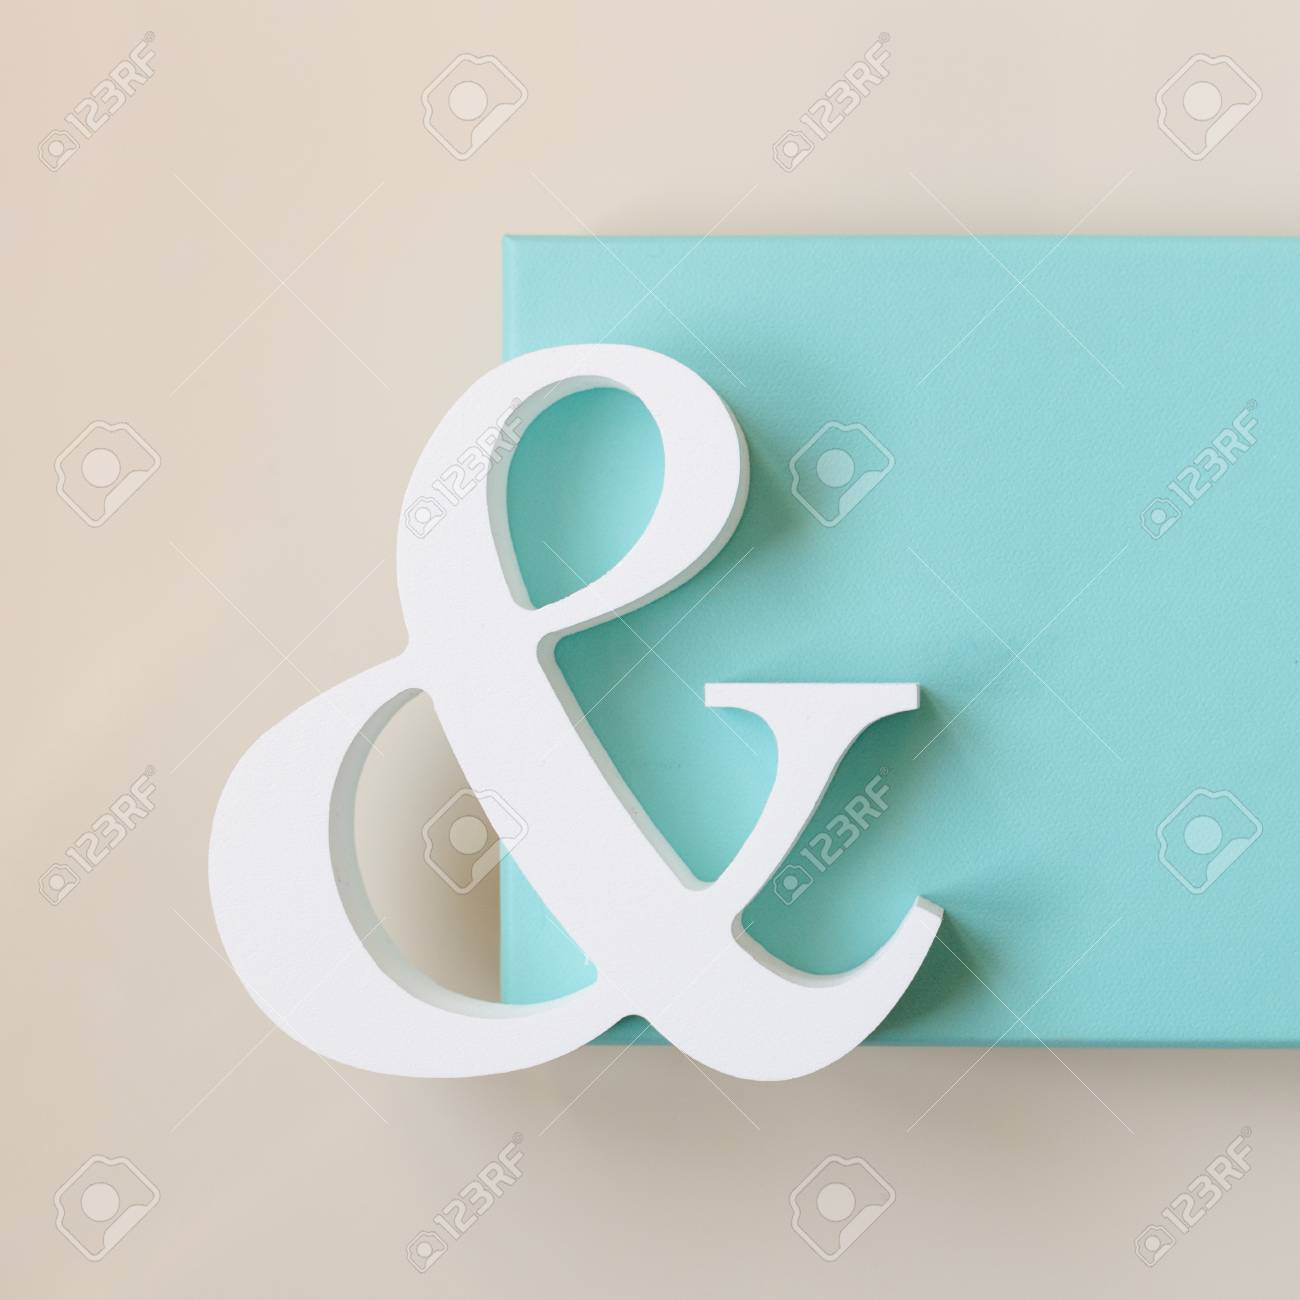 Symbol With Blue Box Stock Photo Picture And Royalty Free Image